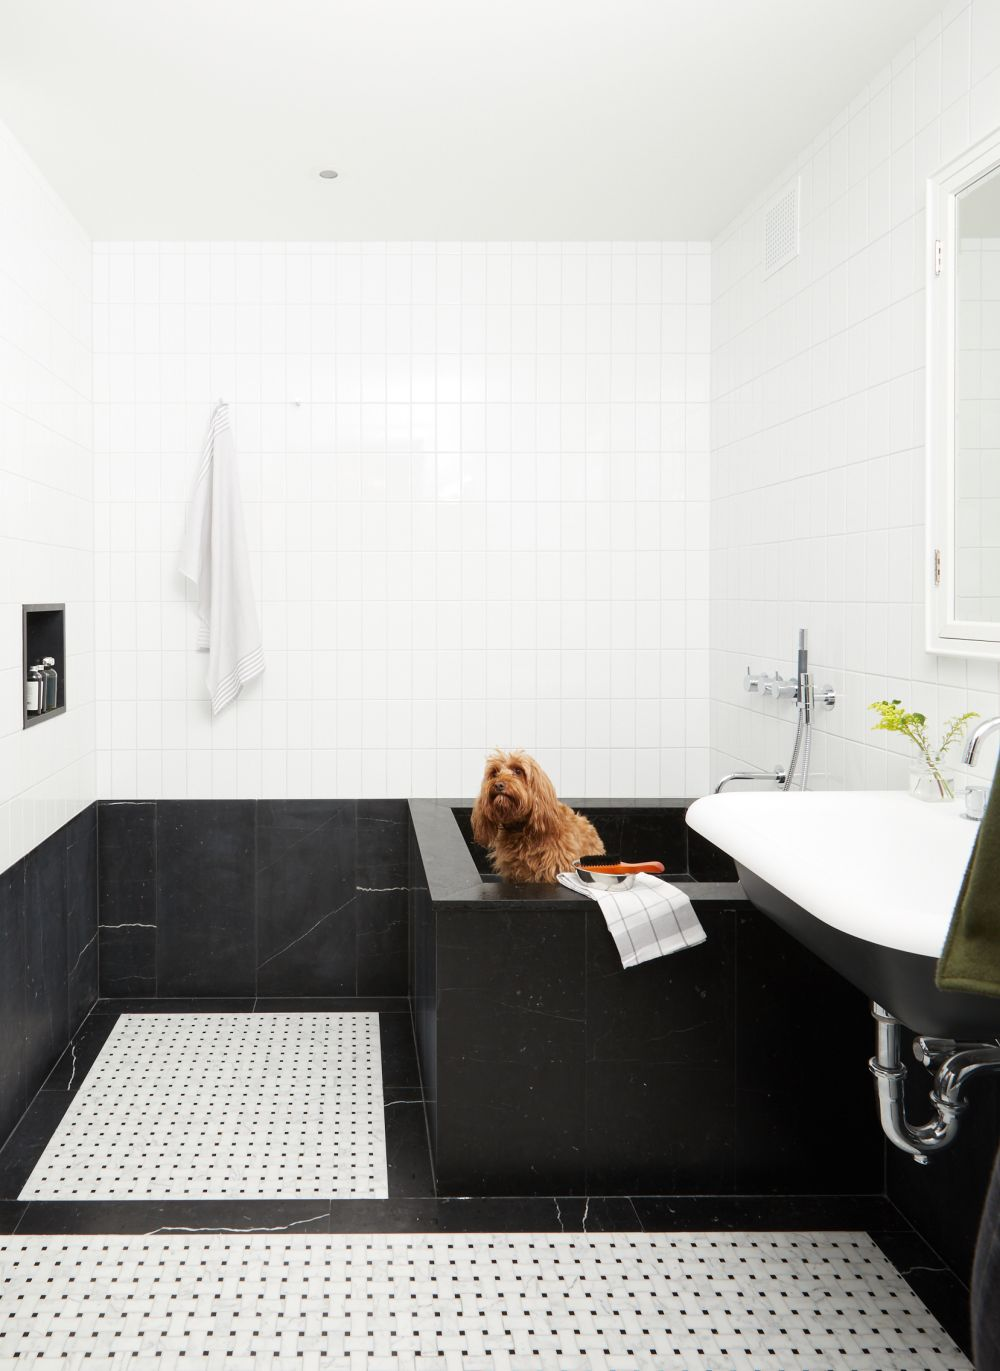 This bathroom doubles as a pet spa, featuring a tall but shallow shower and sink area for the dogs